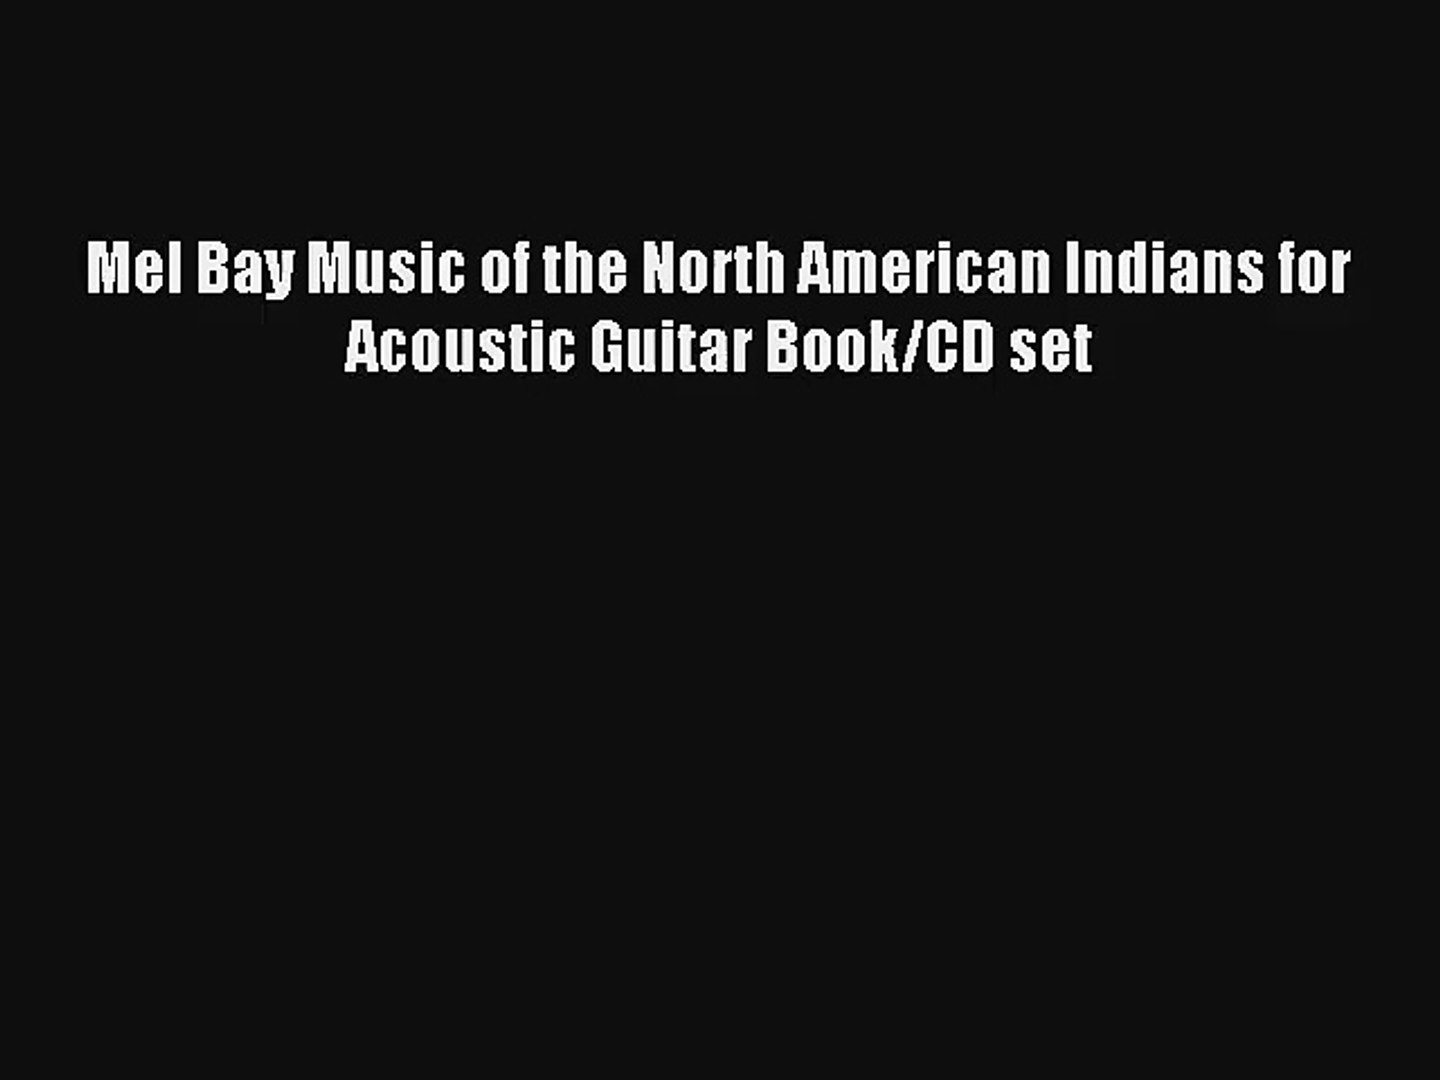 [PDF Download] Mel Bay Music of the North American Indians for Acoustic Guitar Book/CD set